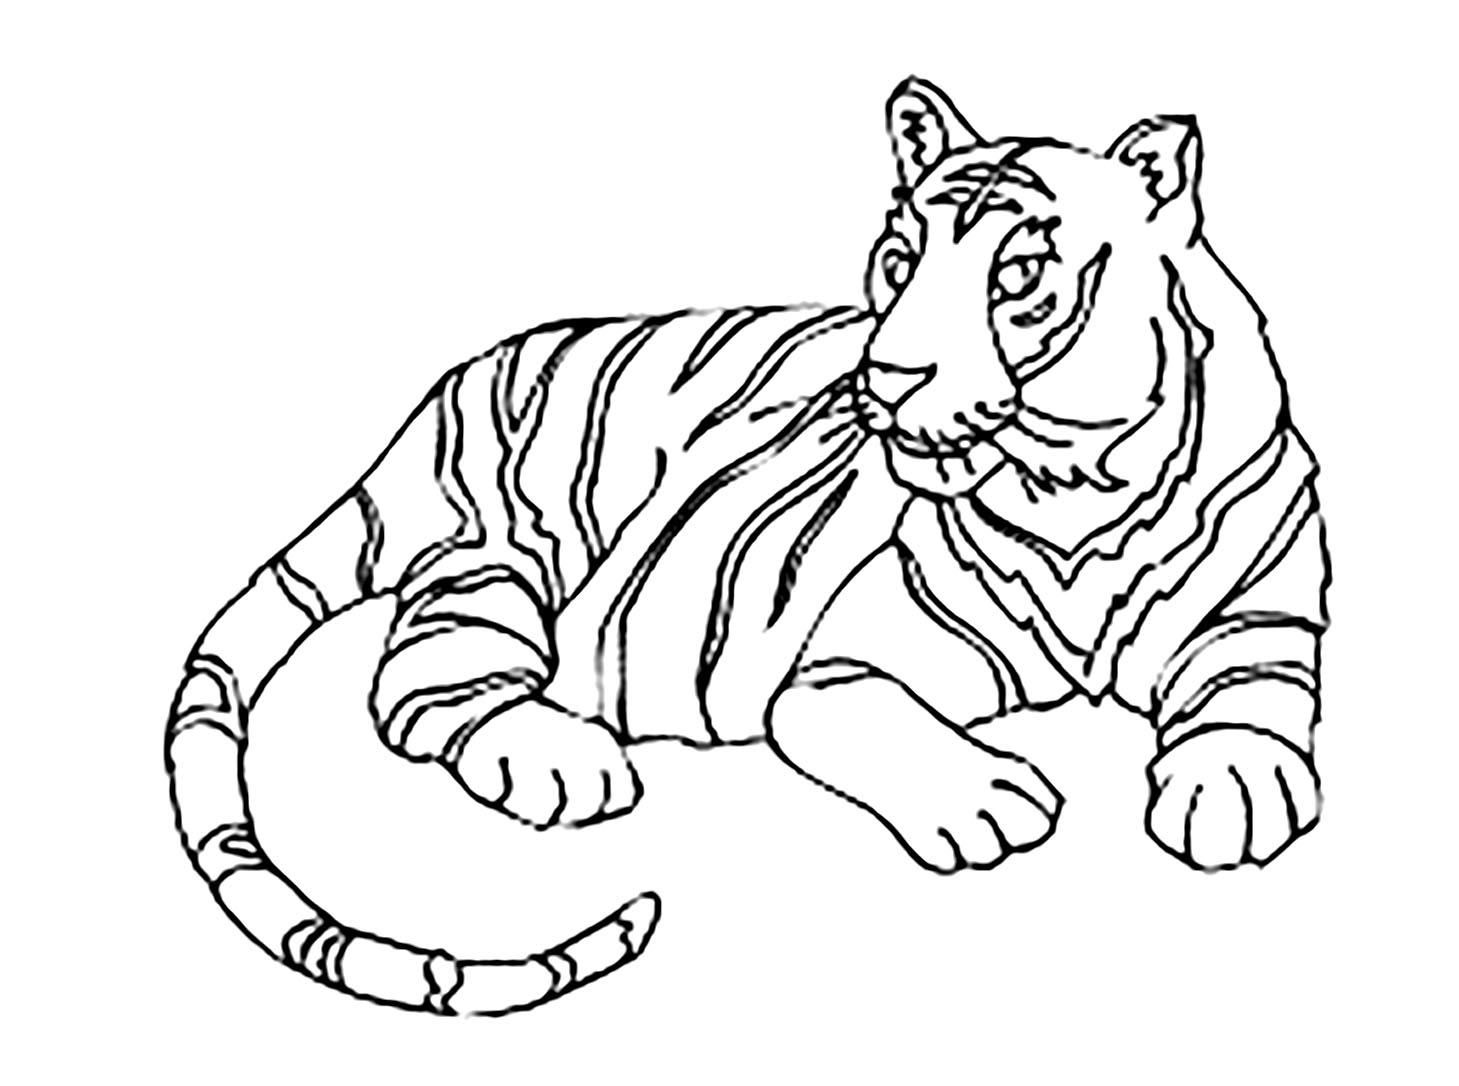 preschool tiger coloring pages awesome coloring page tiger that you must know youre in coloring pages preschool tiger